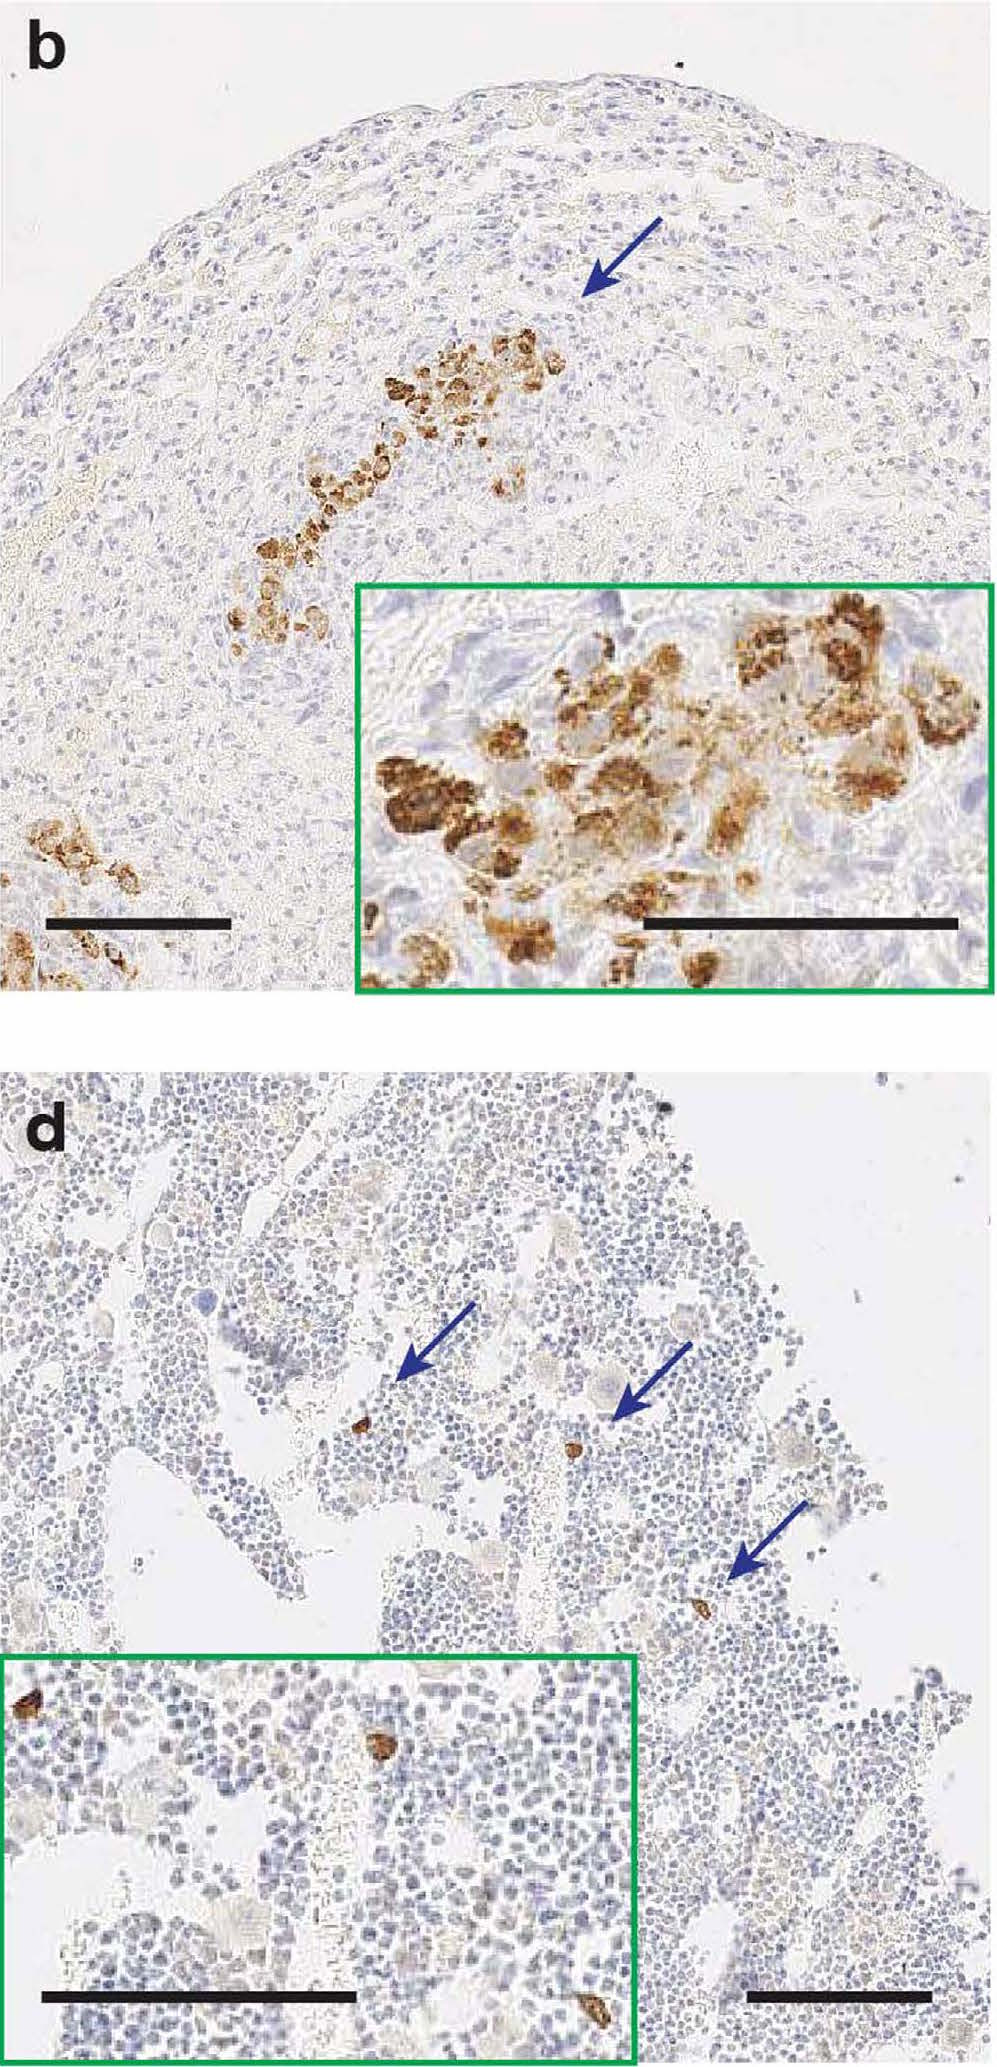 Image of cancer metastasis in mice.